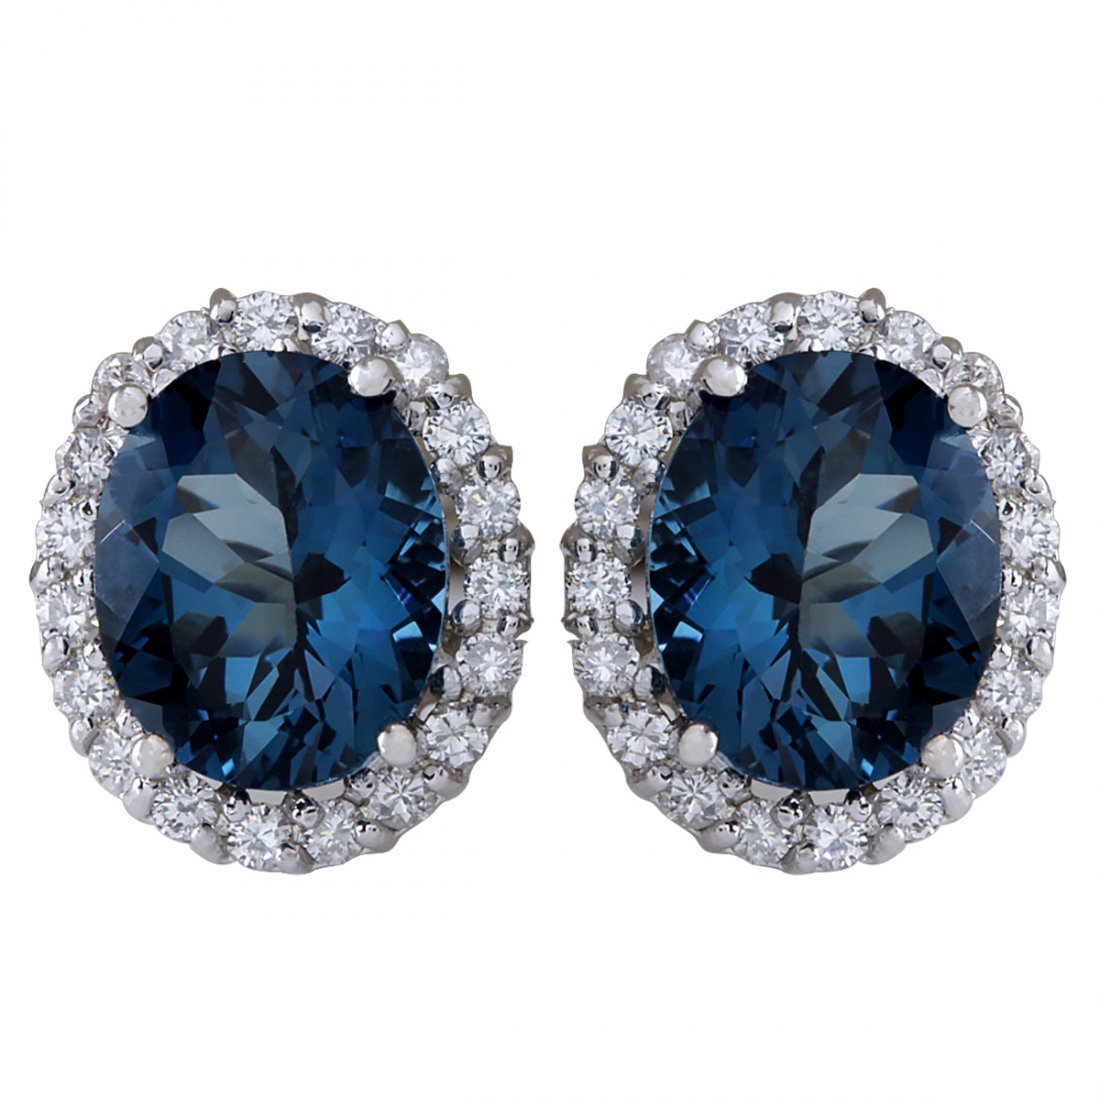 8.50CTW Natural Topaz And Diamond Earrings 14K Solid